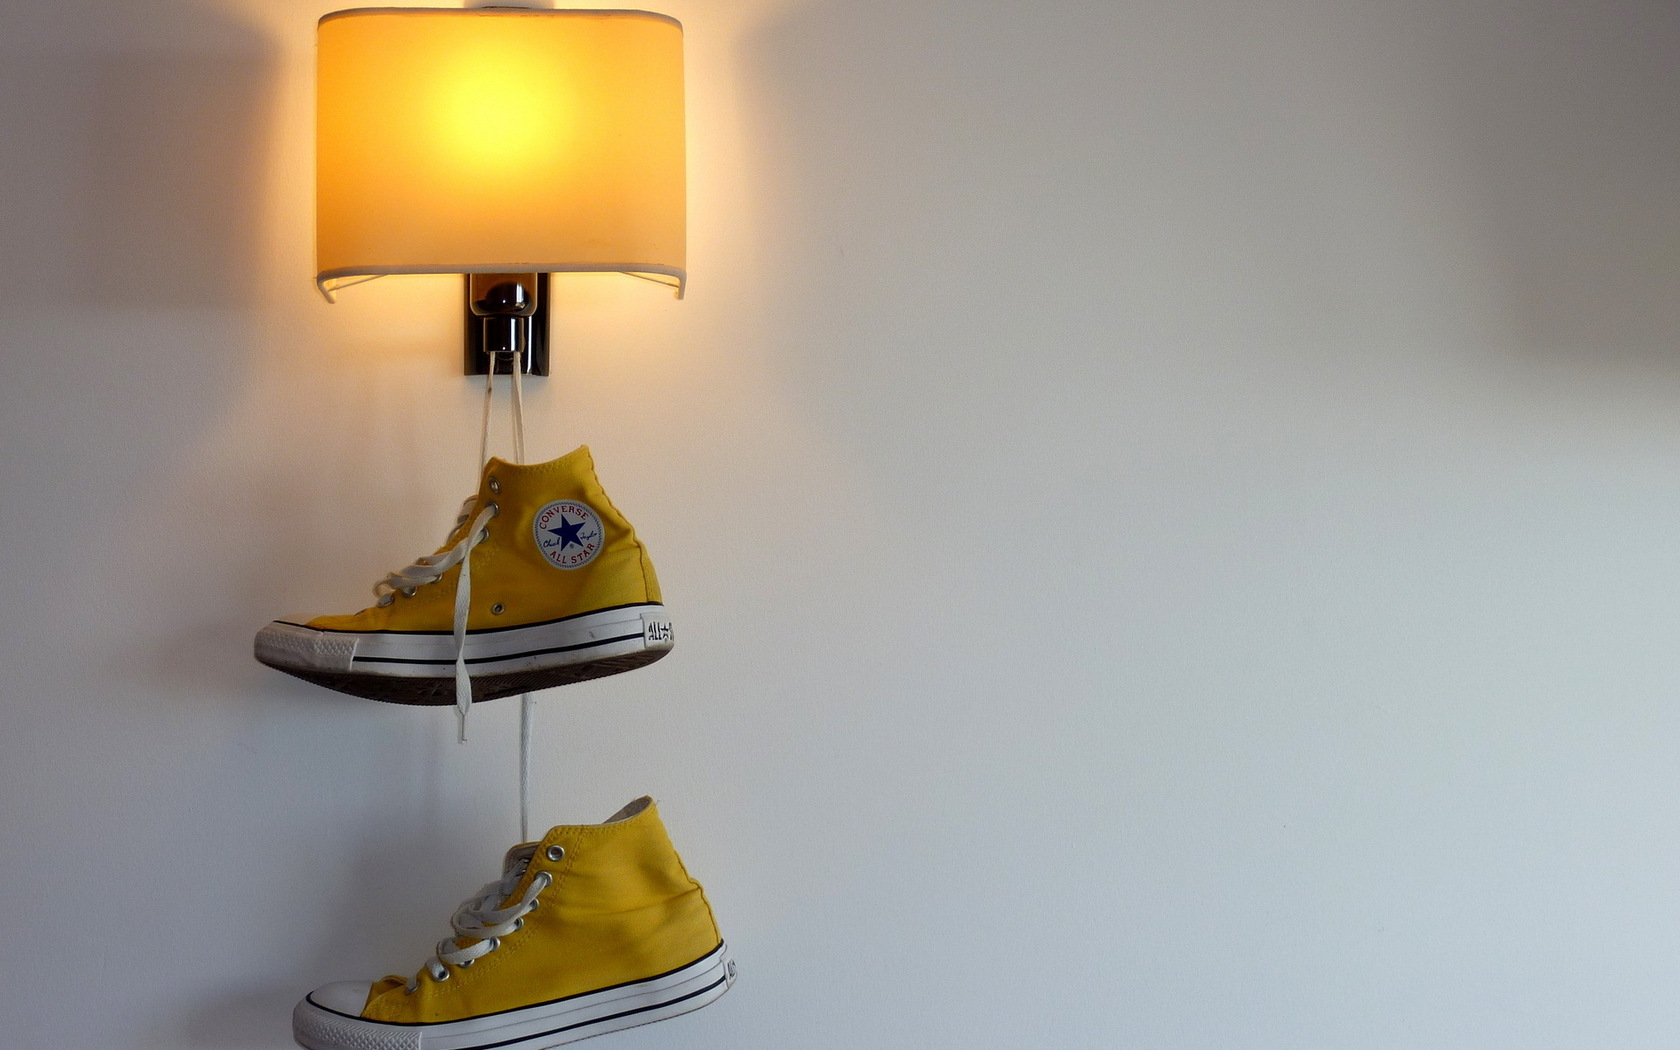 yellow converse widescreen desktop wallpaper 986